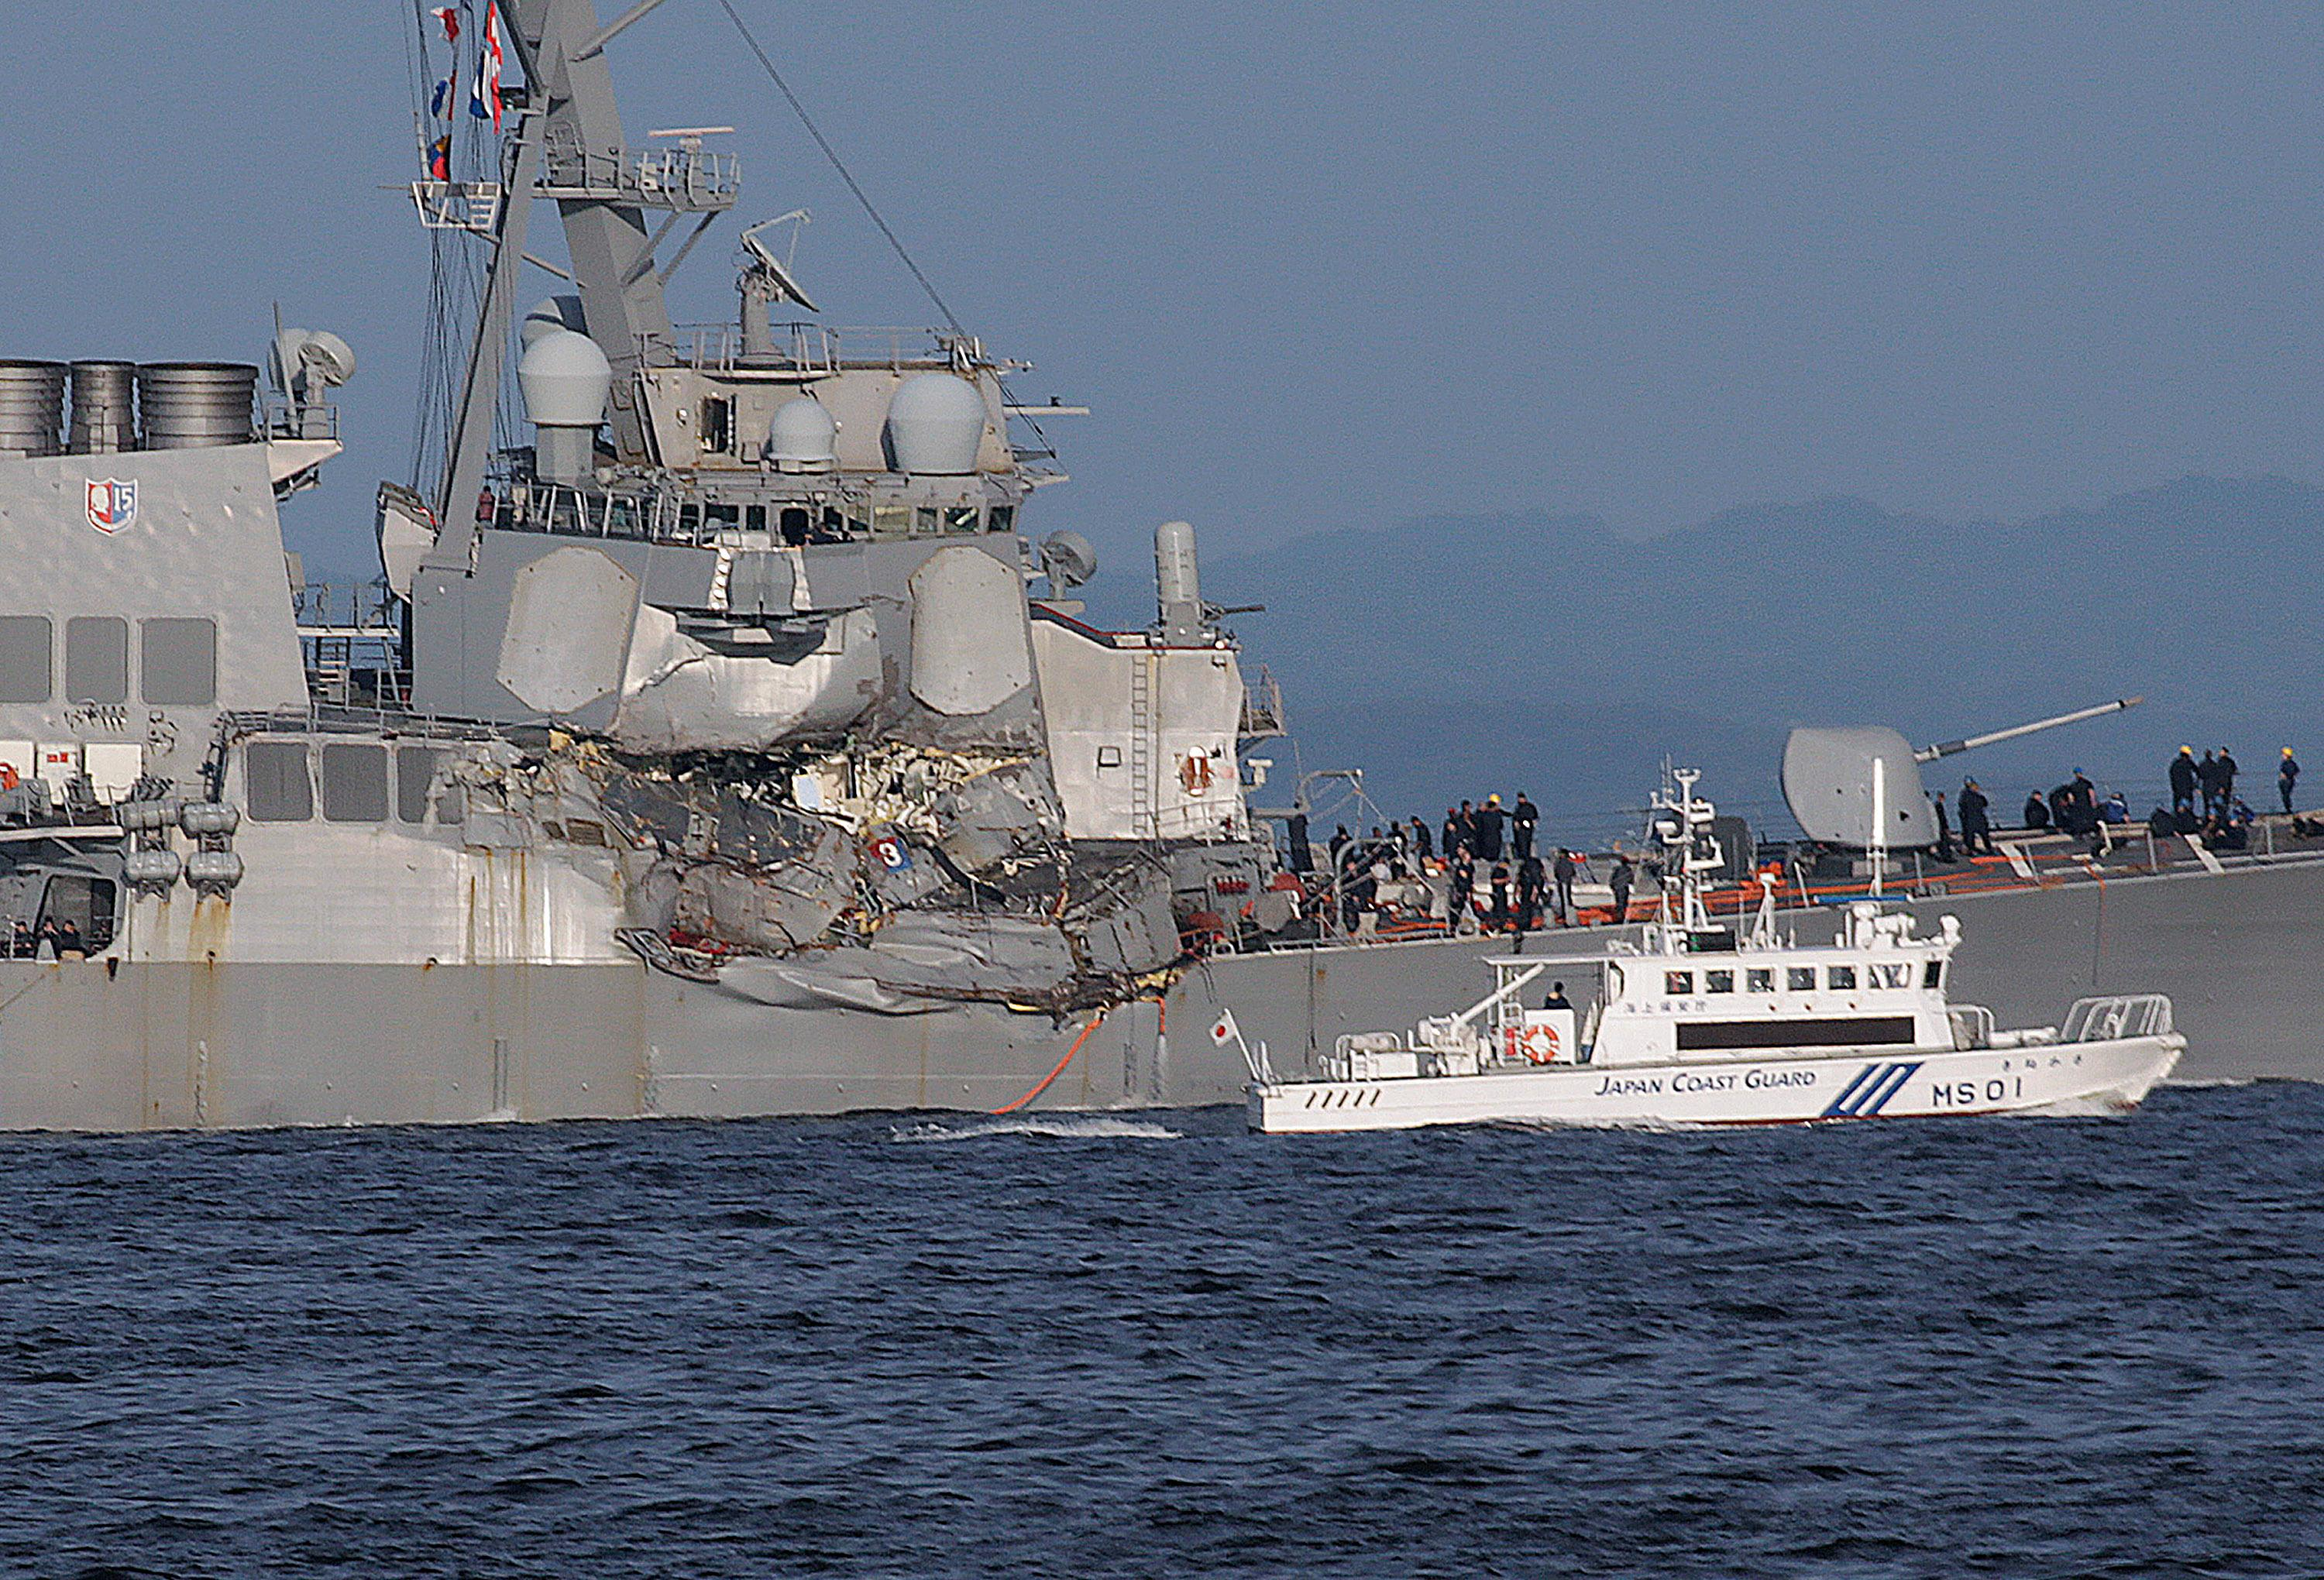 A Japan Coast Guard ship, foreground, navigates the damaged USS Fitzgerald near the U.S. Naval base in Yokosuka, southwest of Tokyo, after the U.S. destroyer collided with the Philippine-registered container ship ACX Crystal in the waters off the Izu Peninsula Saturday, June 17, 2017. The USS Fitzgerald was back at its home port in Japan after colliding before dawn Saturday with a container ship four times its size, while the coast guard and Japanese and U.S. military searched for seven sailors missing after t